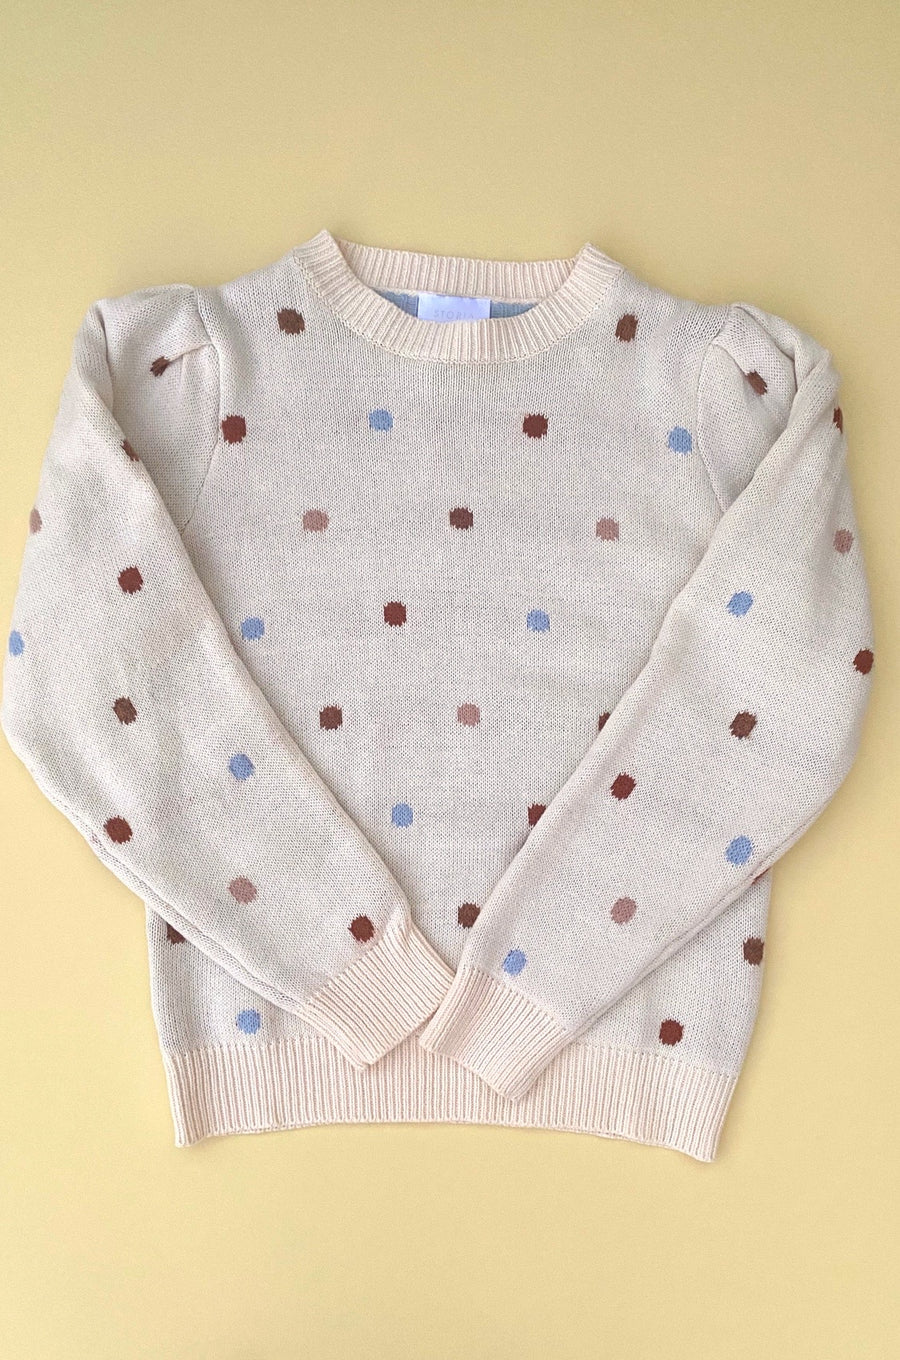 On The Polka Dot Sweater